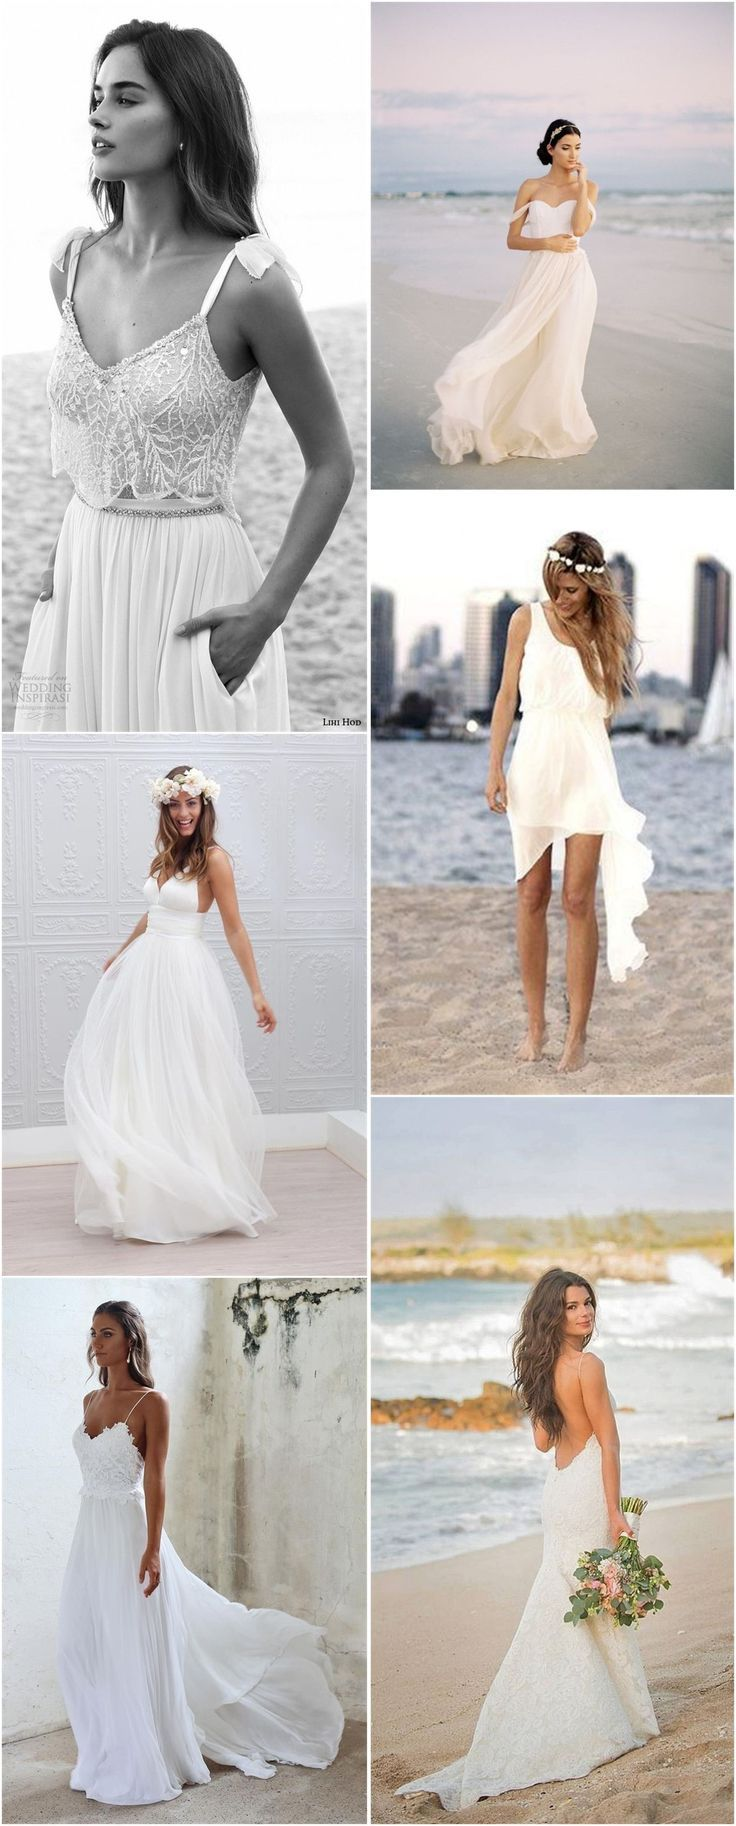 Top beach wedding dresses ideas to stand you out weddings